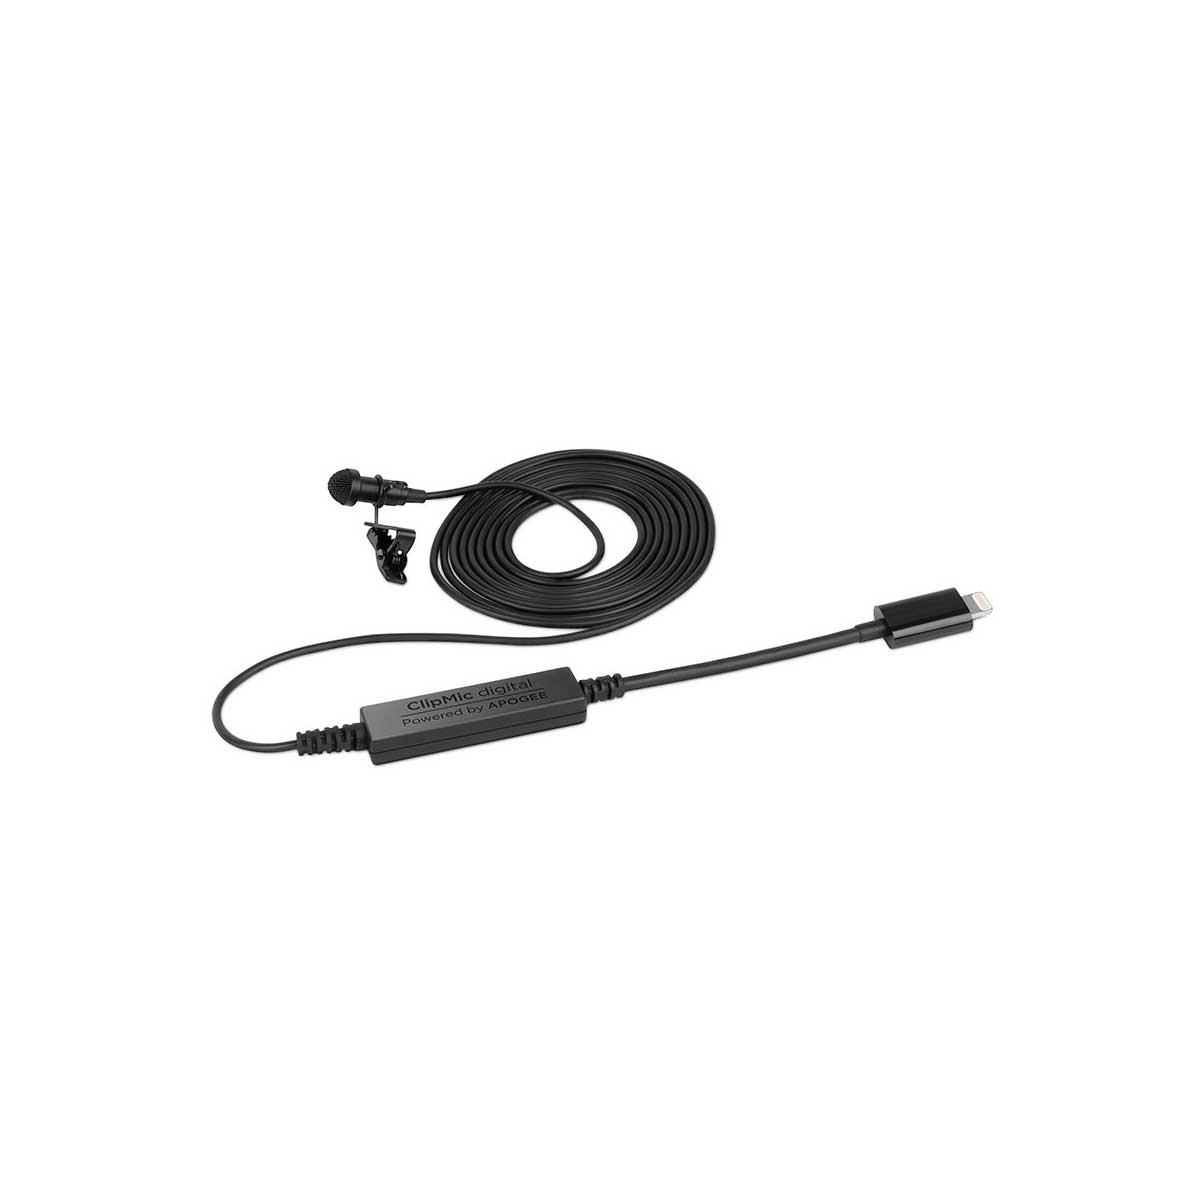 Apogee ClipMic digital Premium Lavalier Microphone for iPhone and iPad